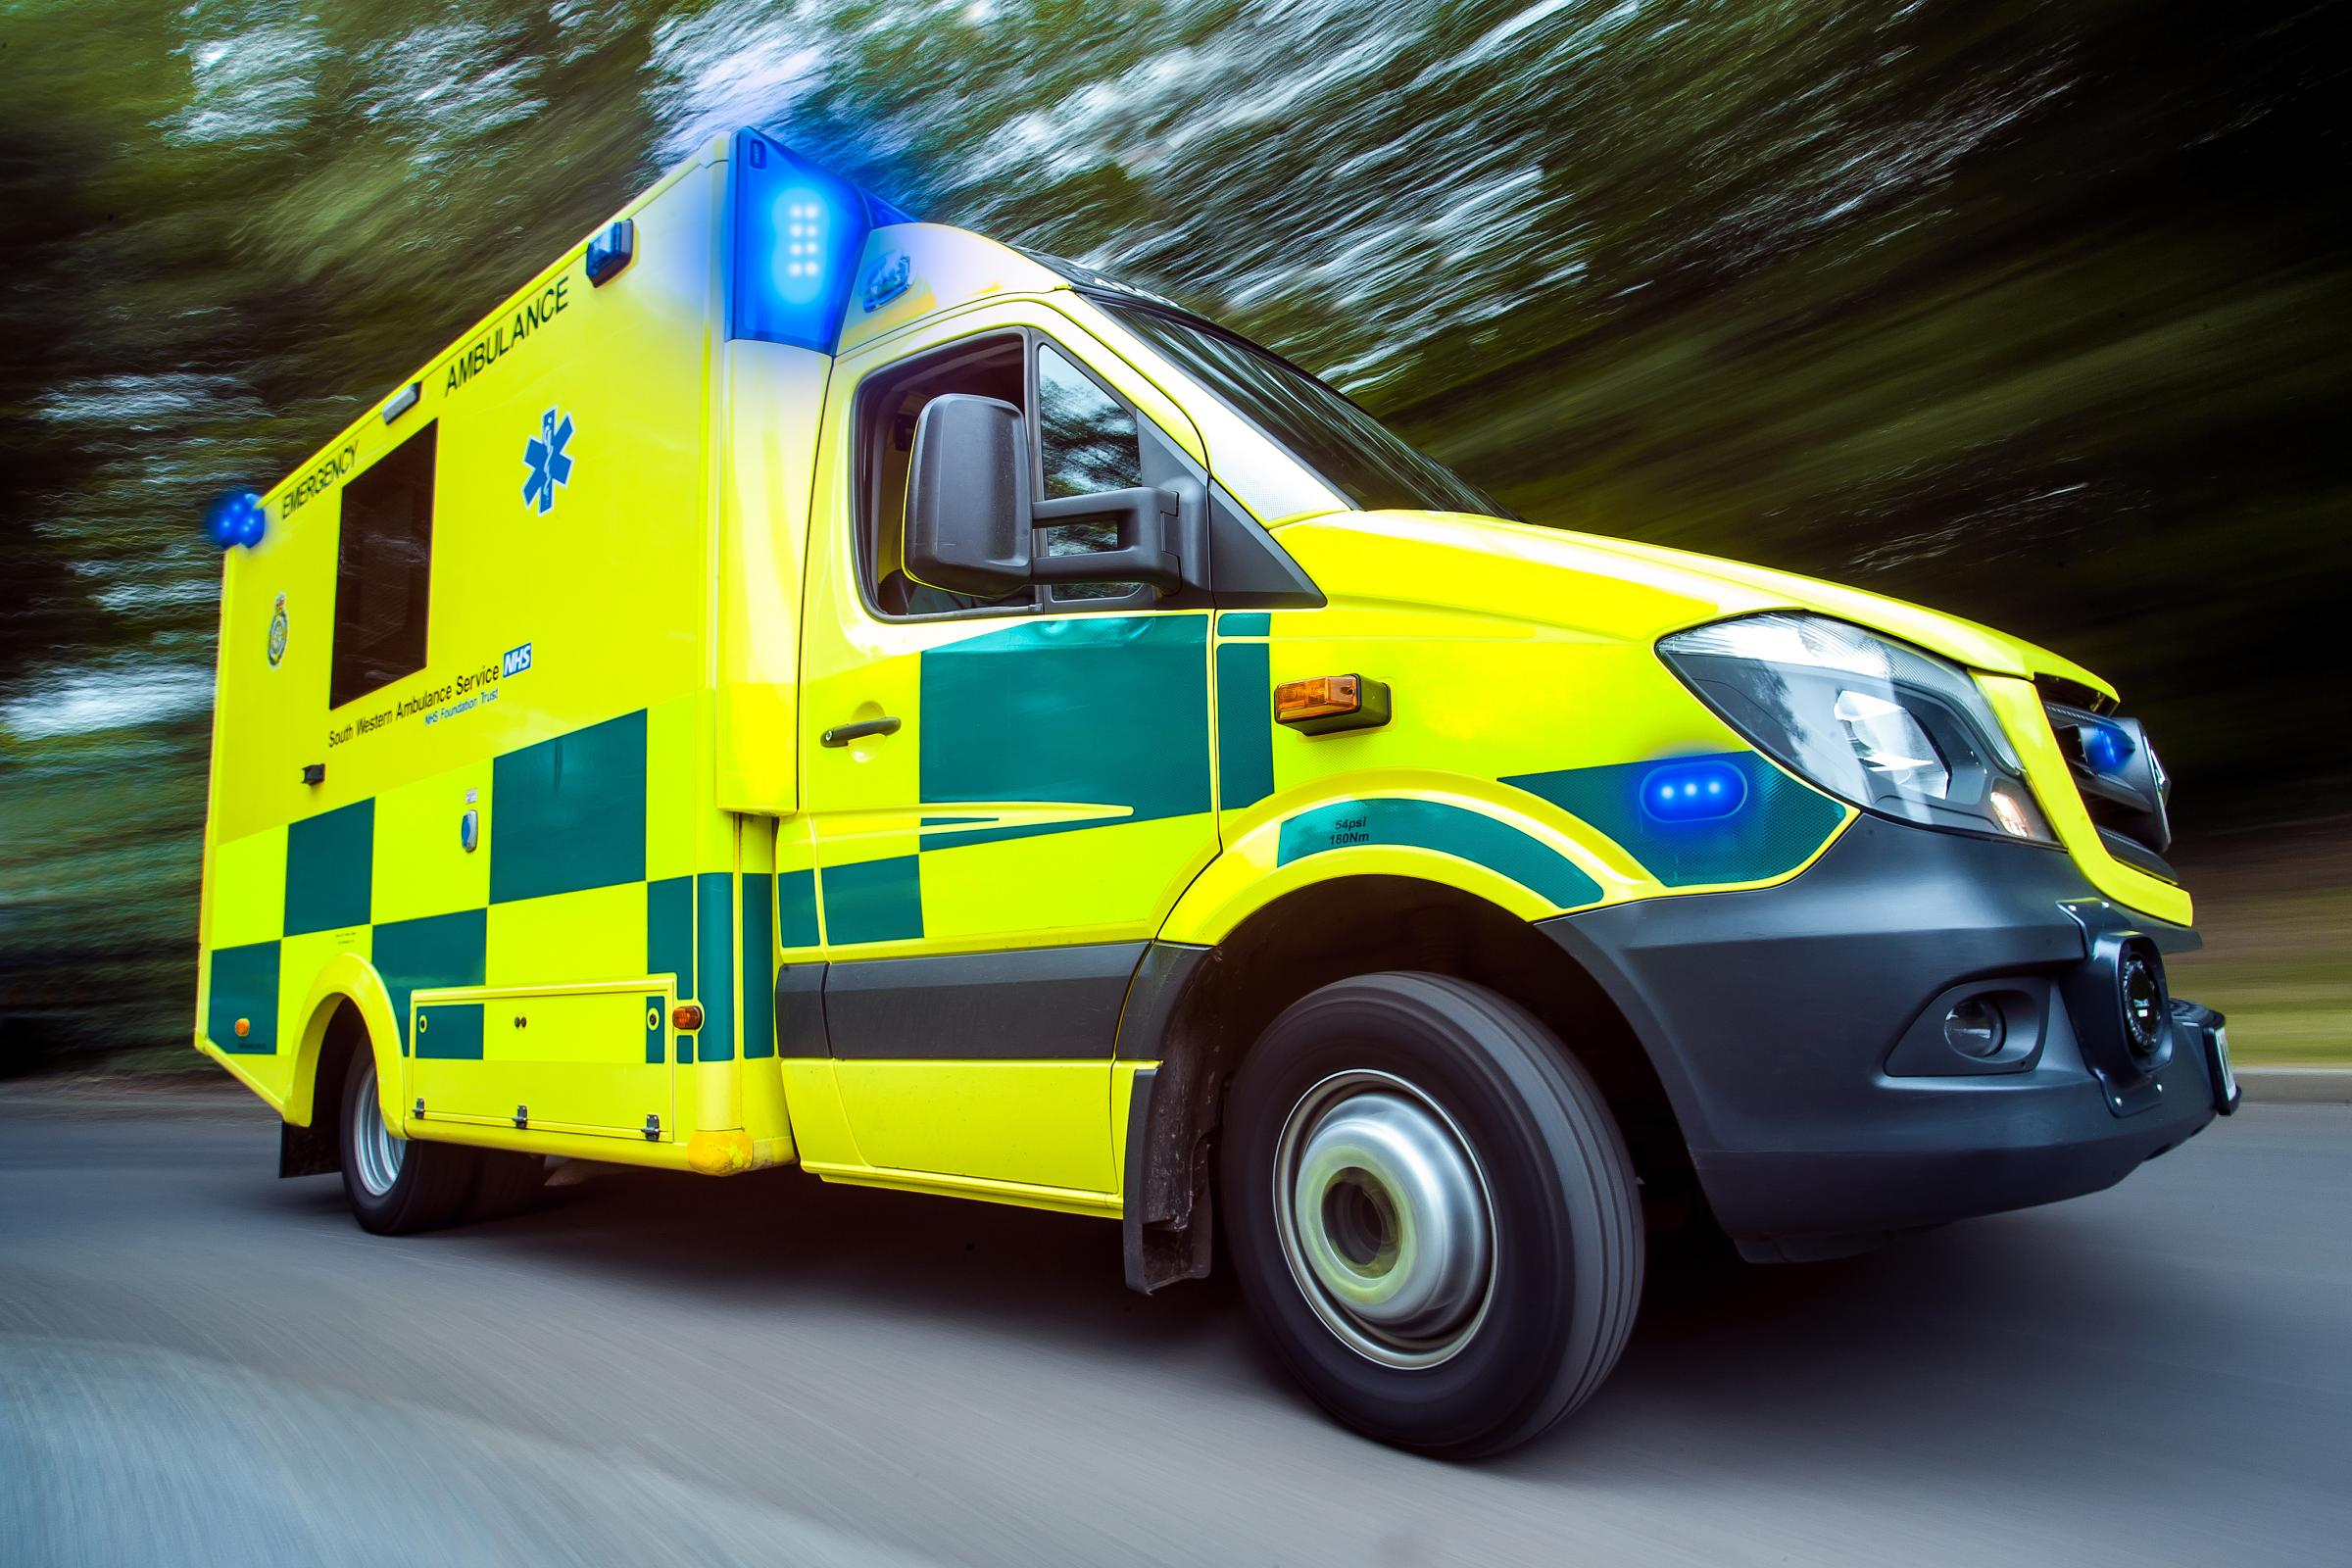 The South Western Ambulance Service